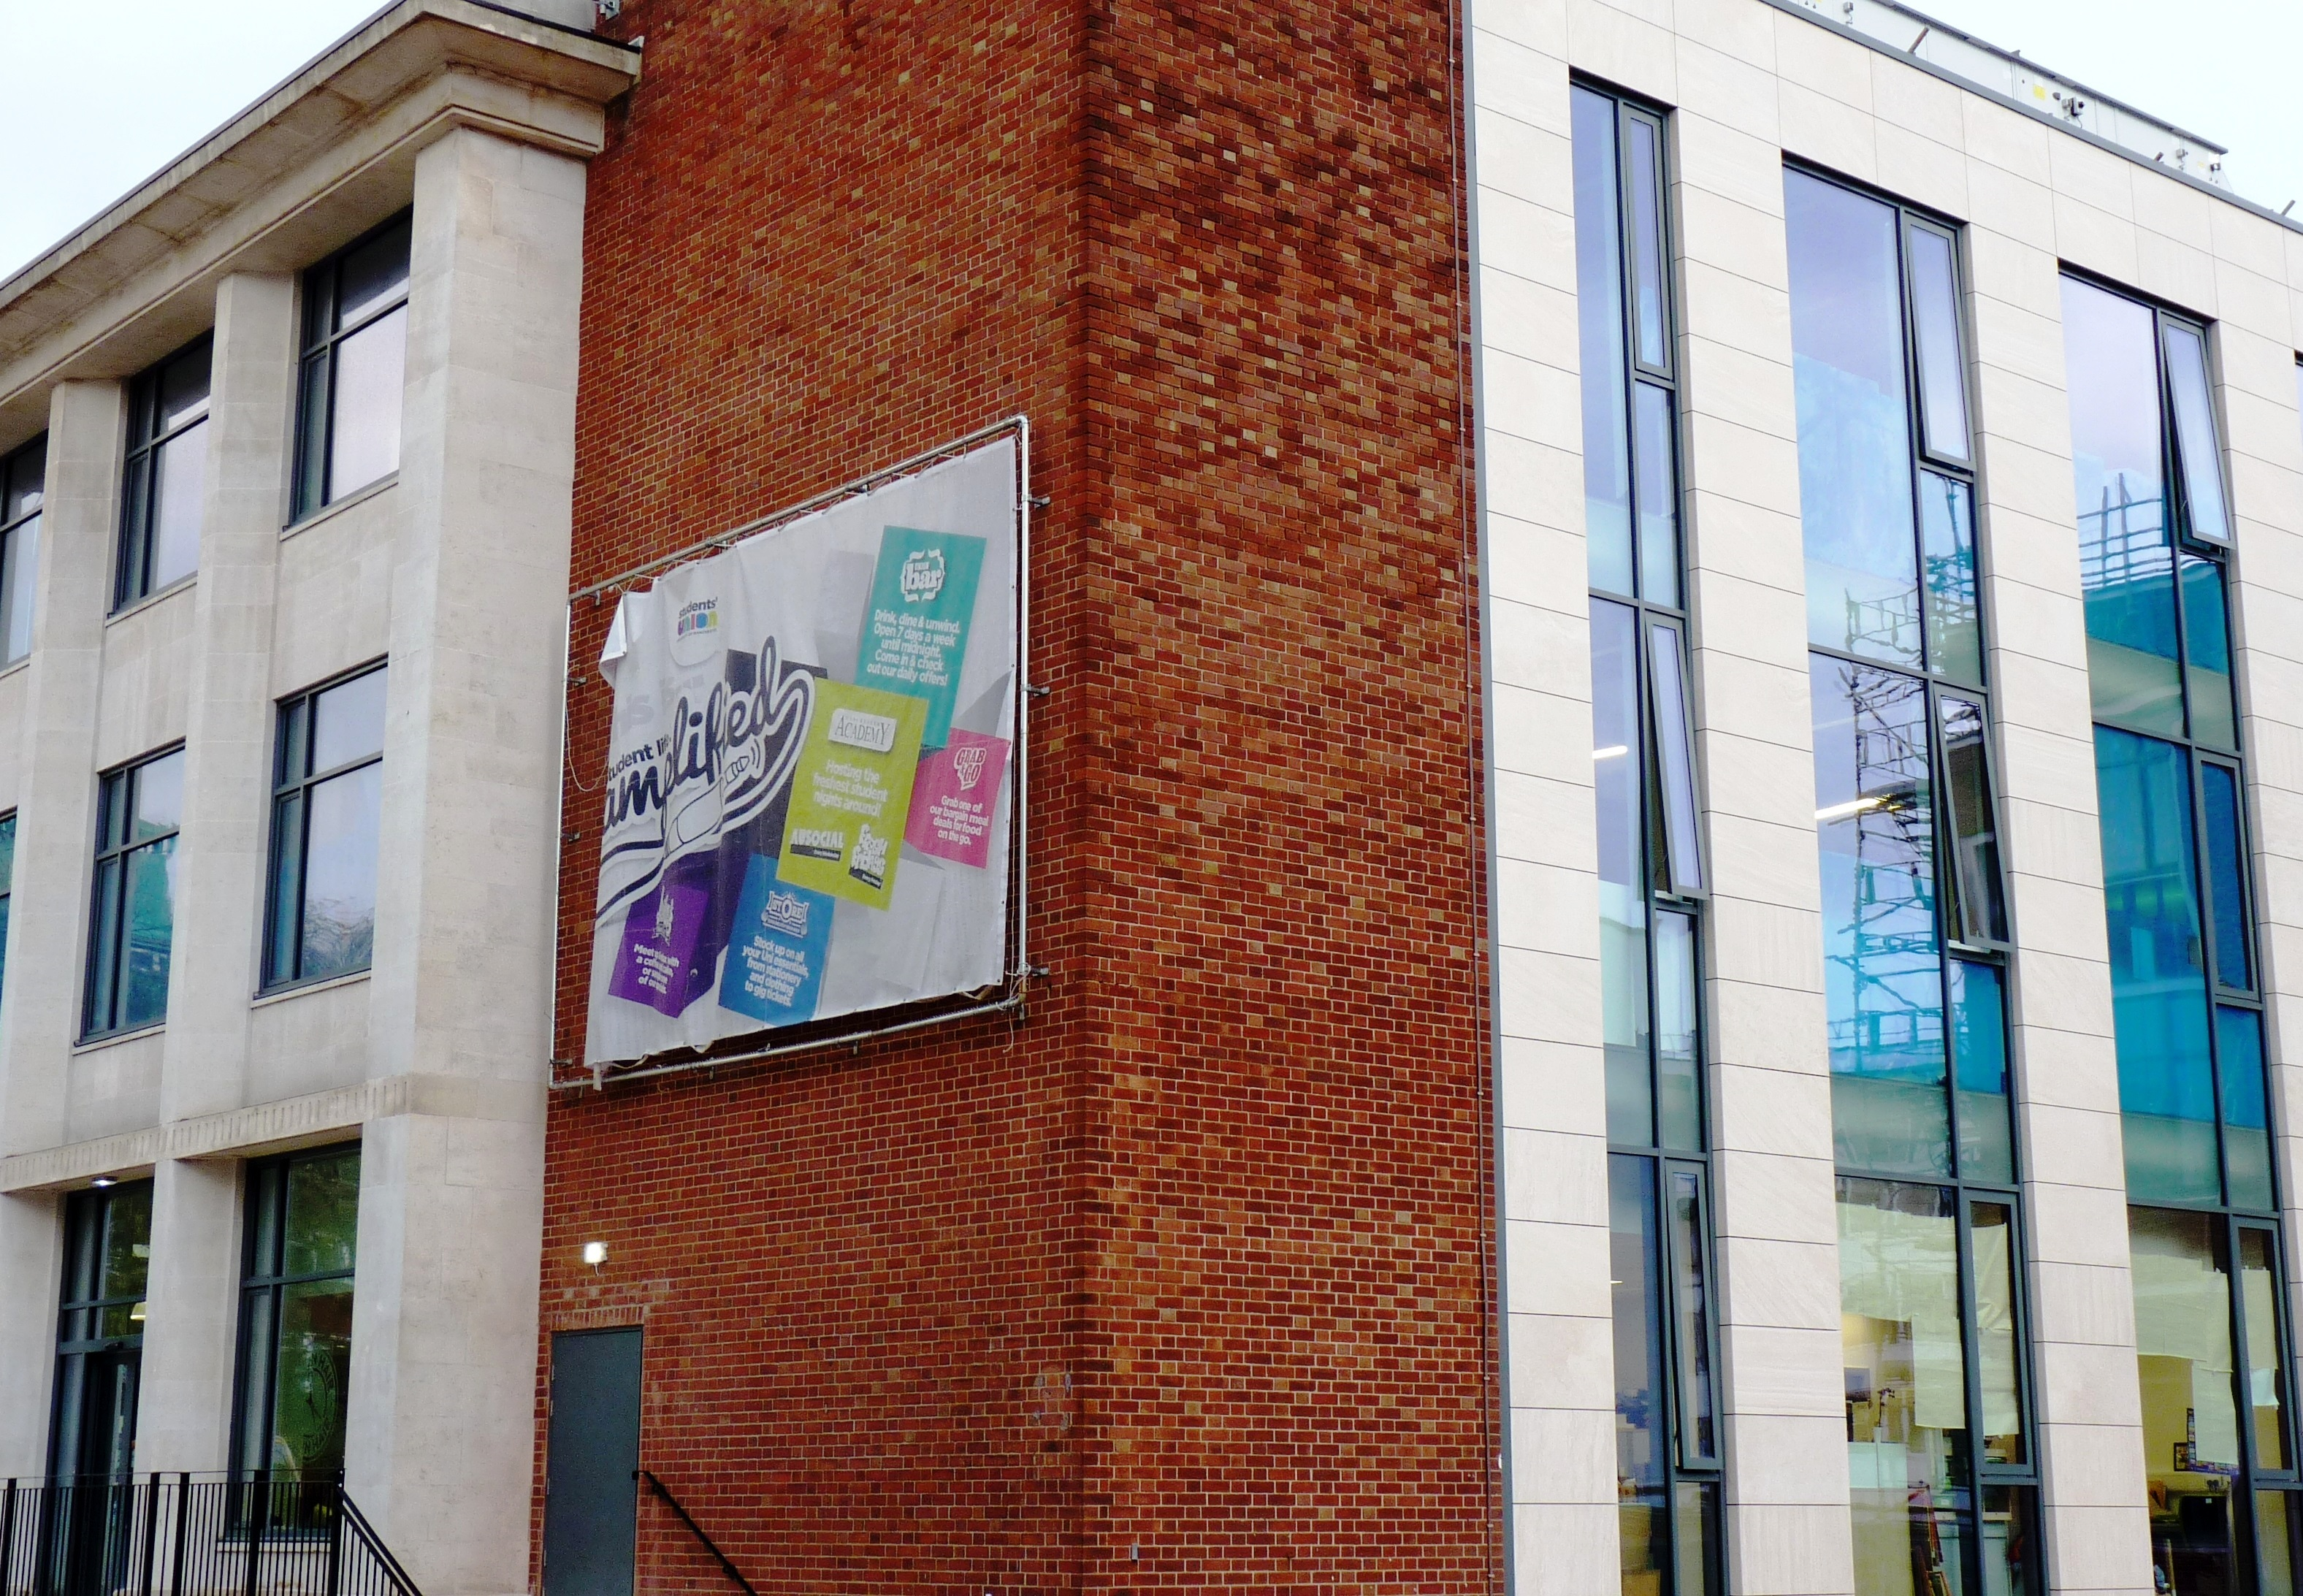 Cladding unites new and old at the University of Manchester